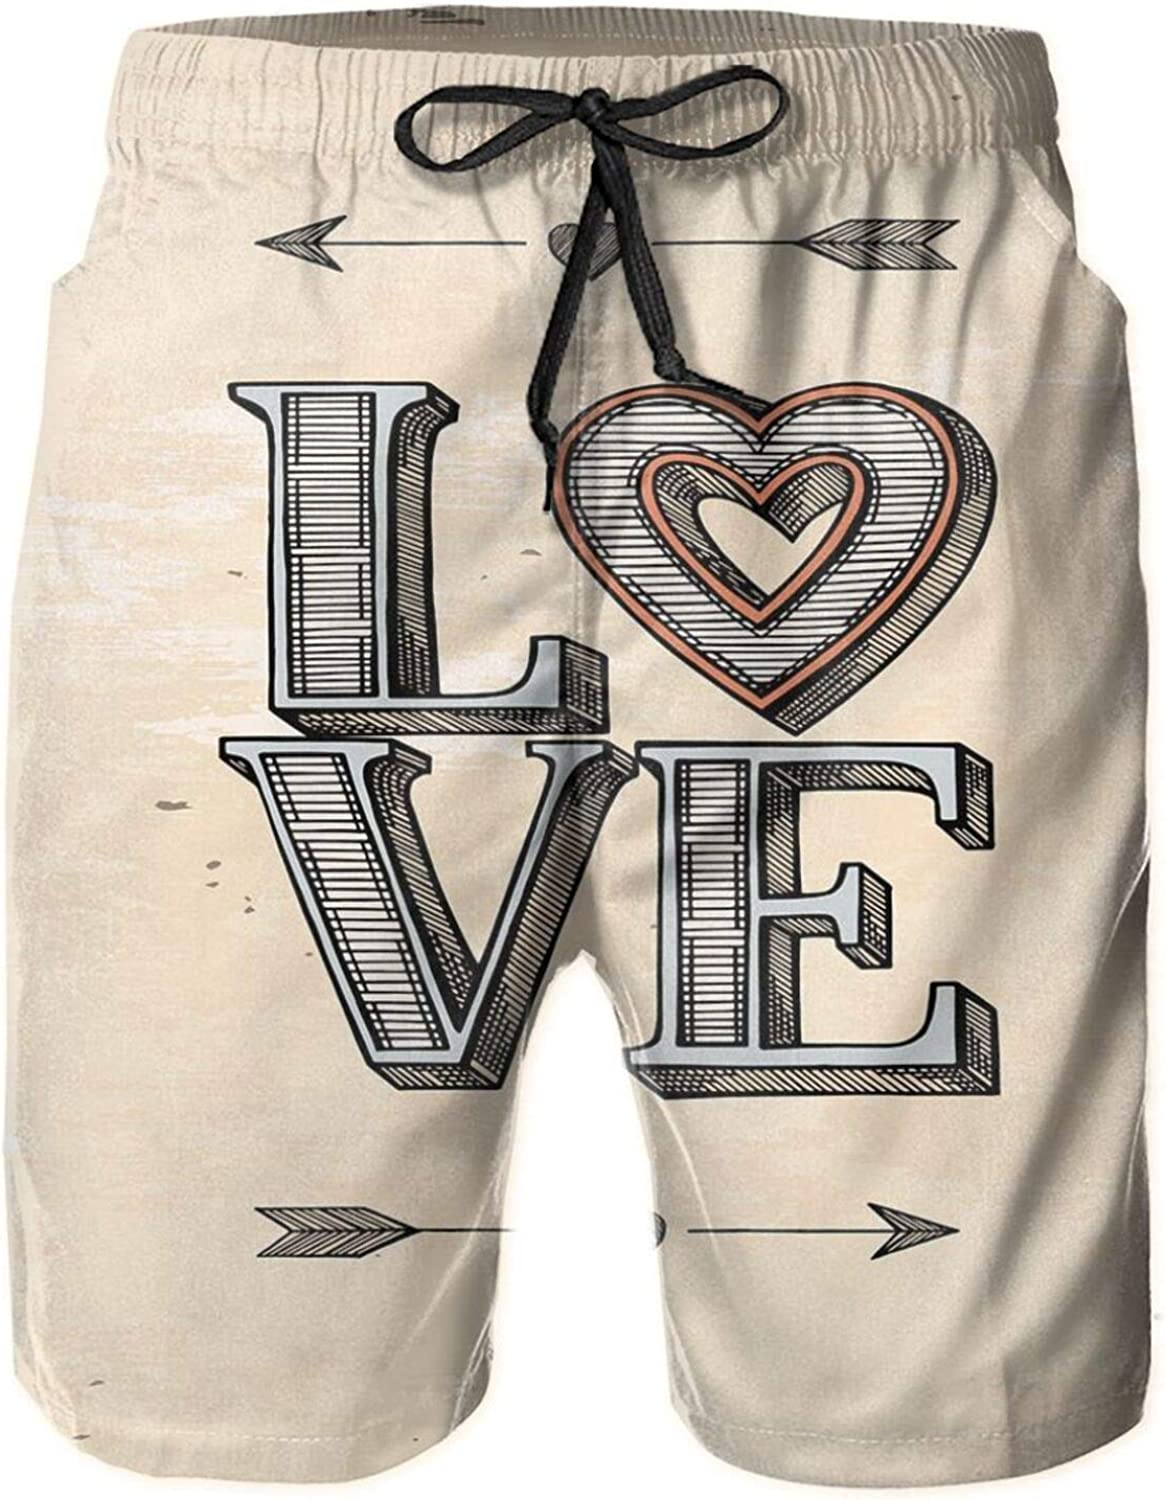 Grunge Letters with Valentines Heart and Arrows Boho Tribal Hipster Design Mens Swim Shorts Casual Workout Short Pants Drawstring Beach Shorts,XL